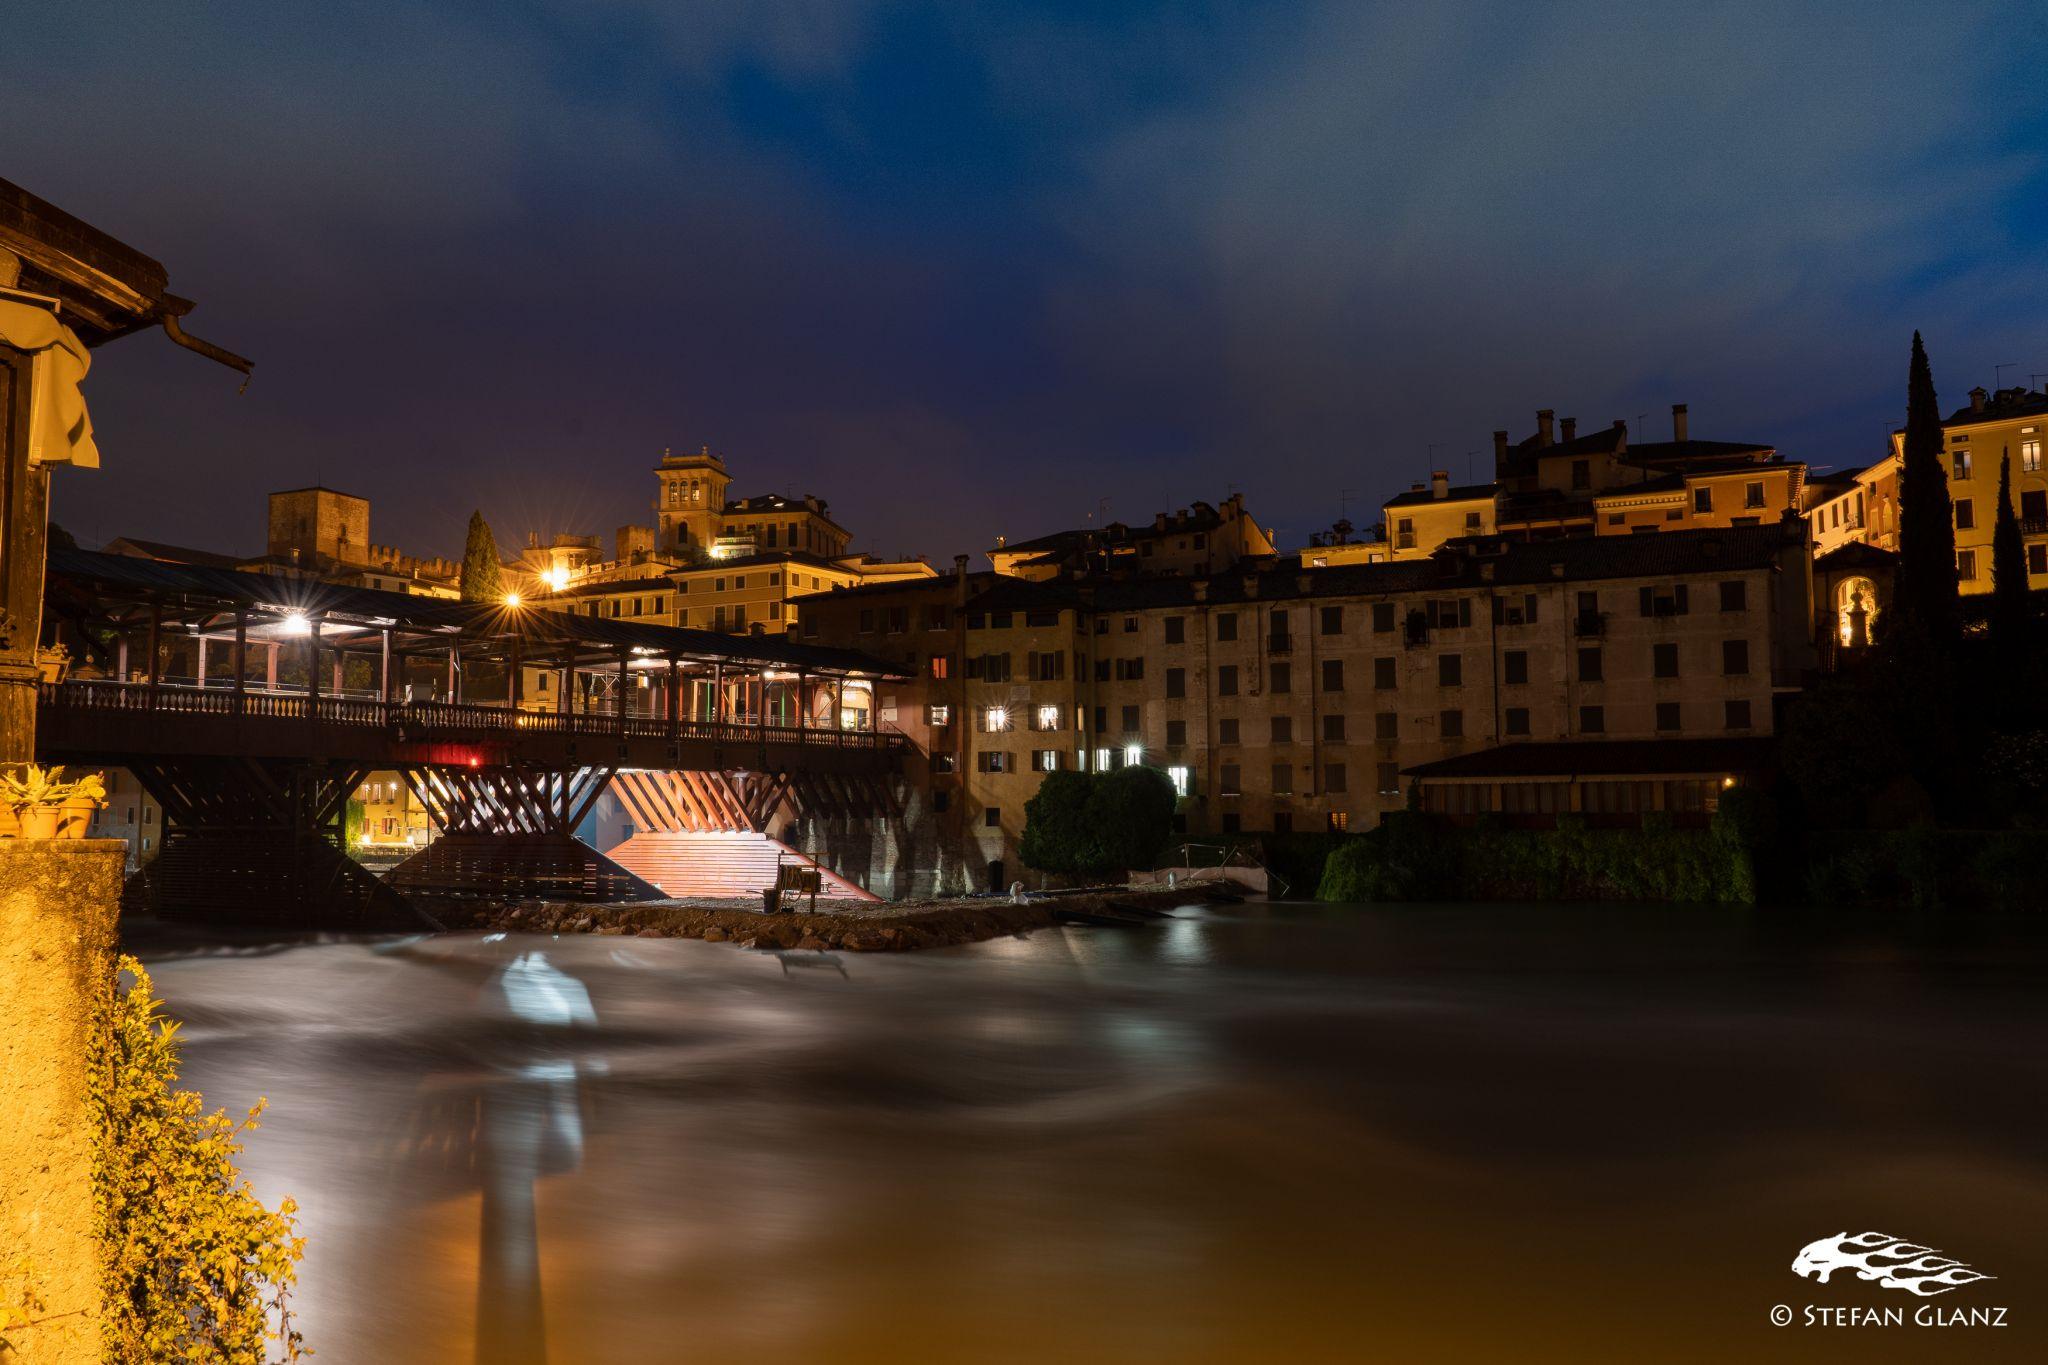 Ponte Vecchio with the castle in the backdrop, Italy